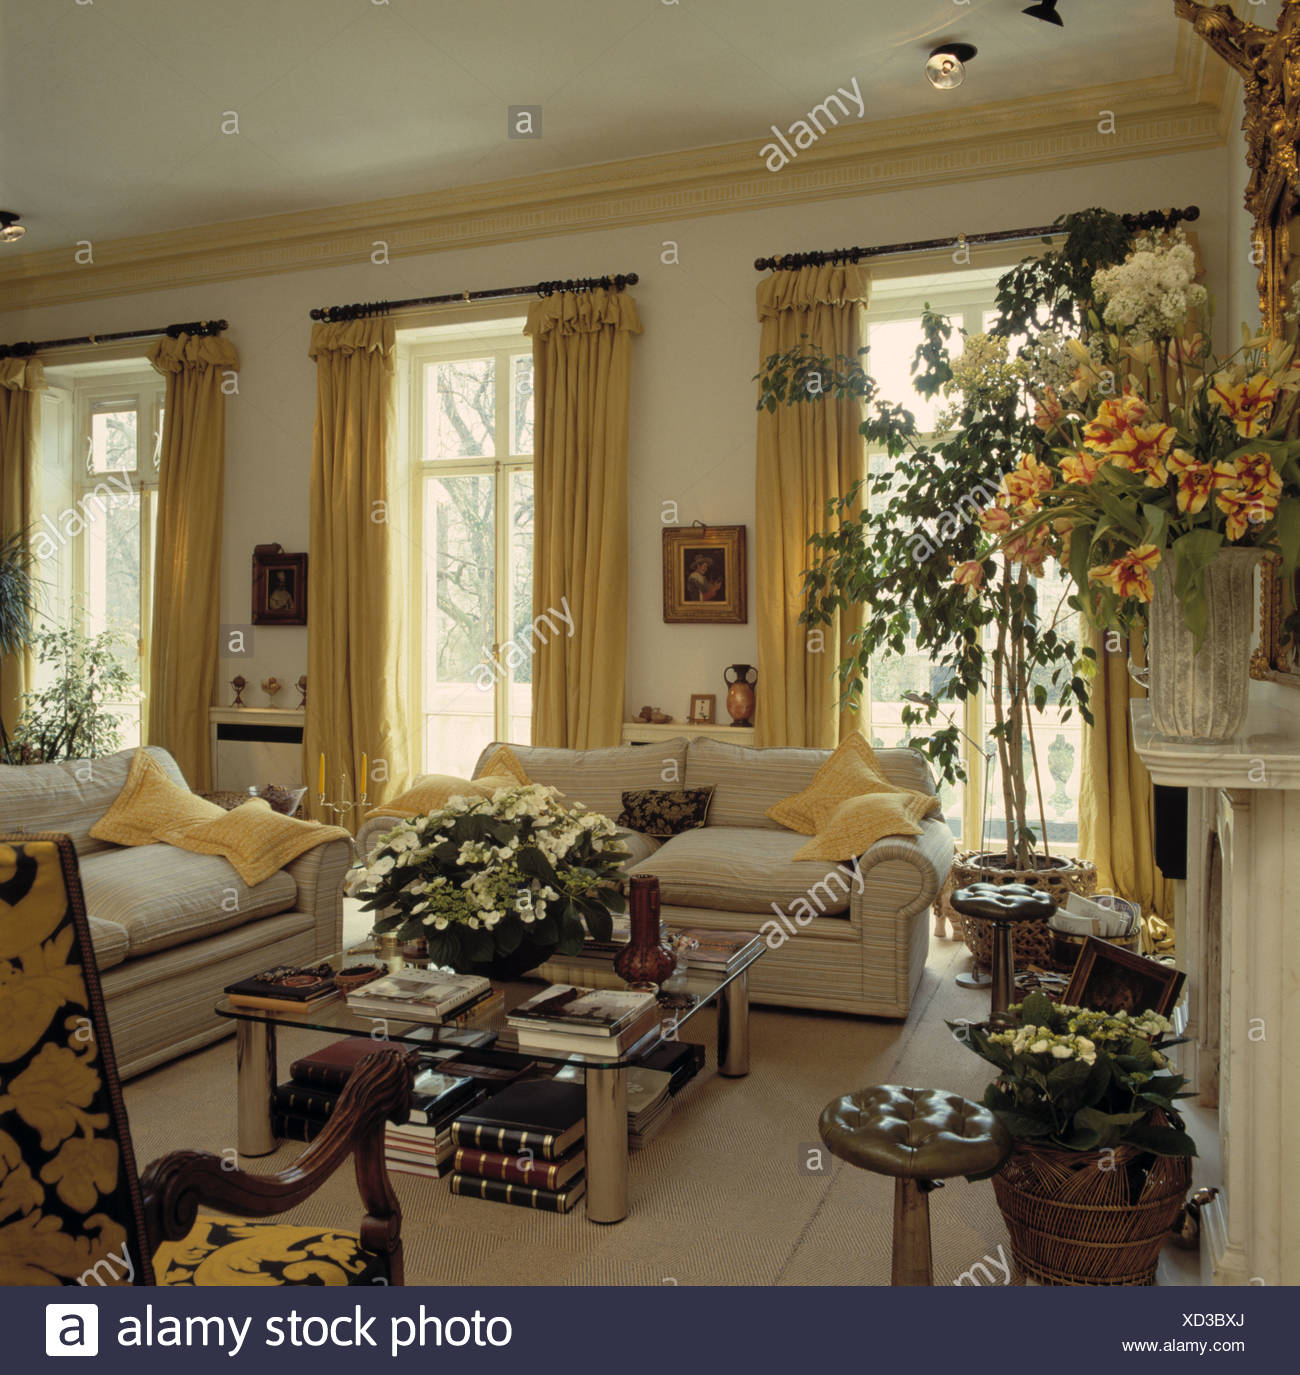 Attrayant Yellow Curtains French Windows In Traditional Living Room With Cream Sofas  And Floral Arrangements